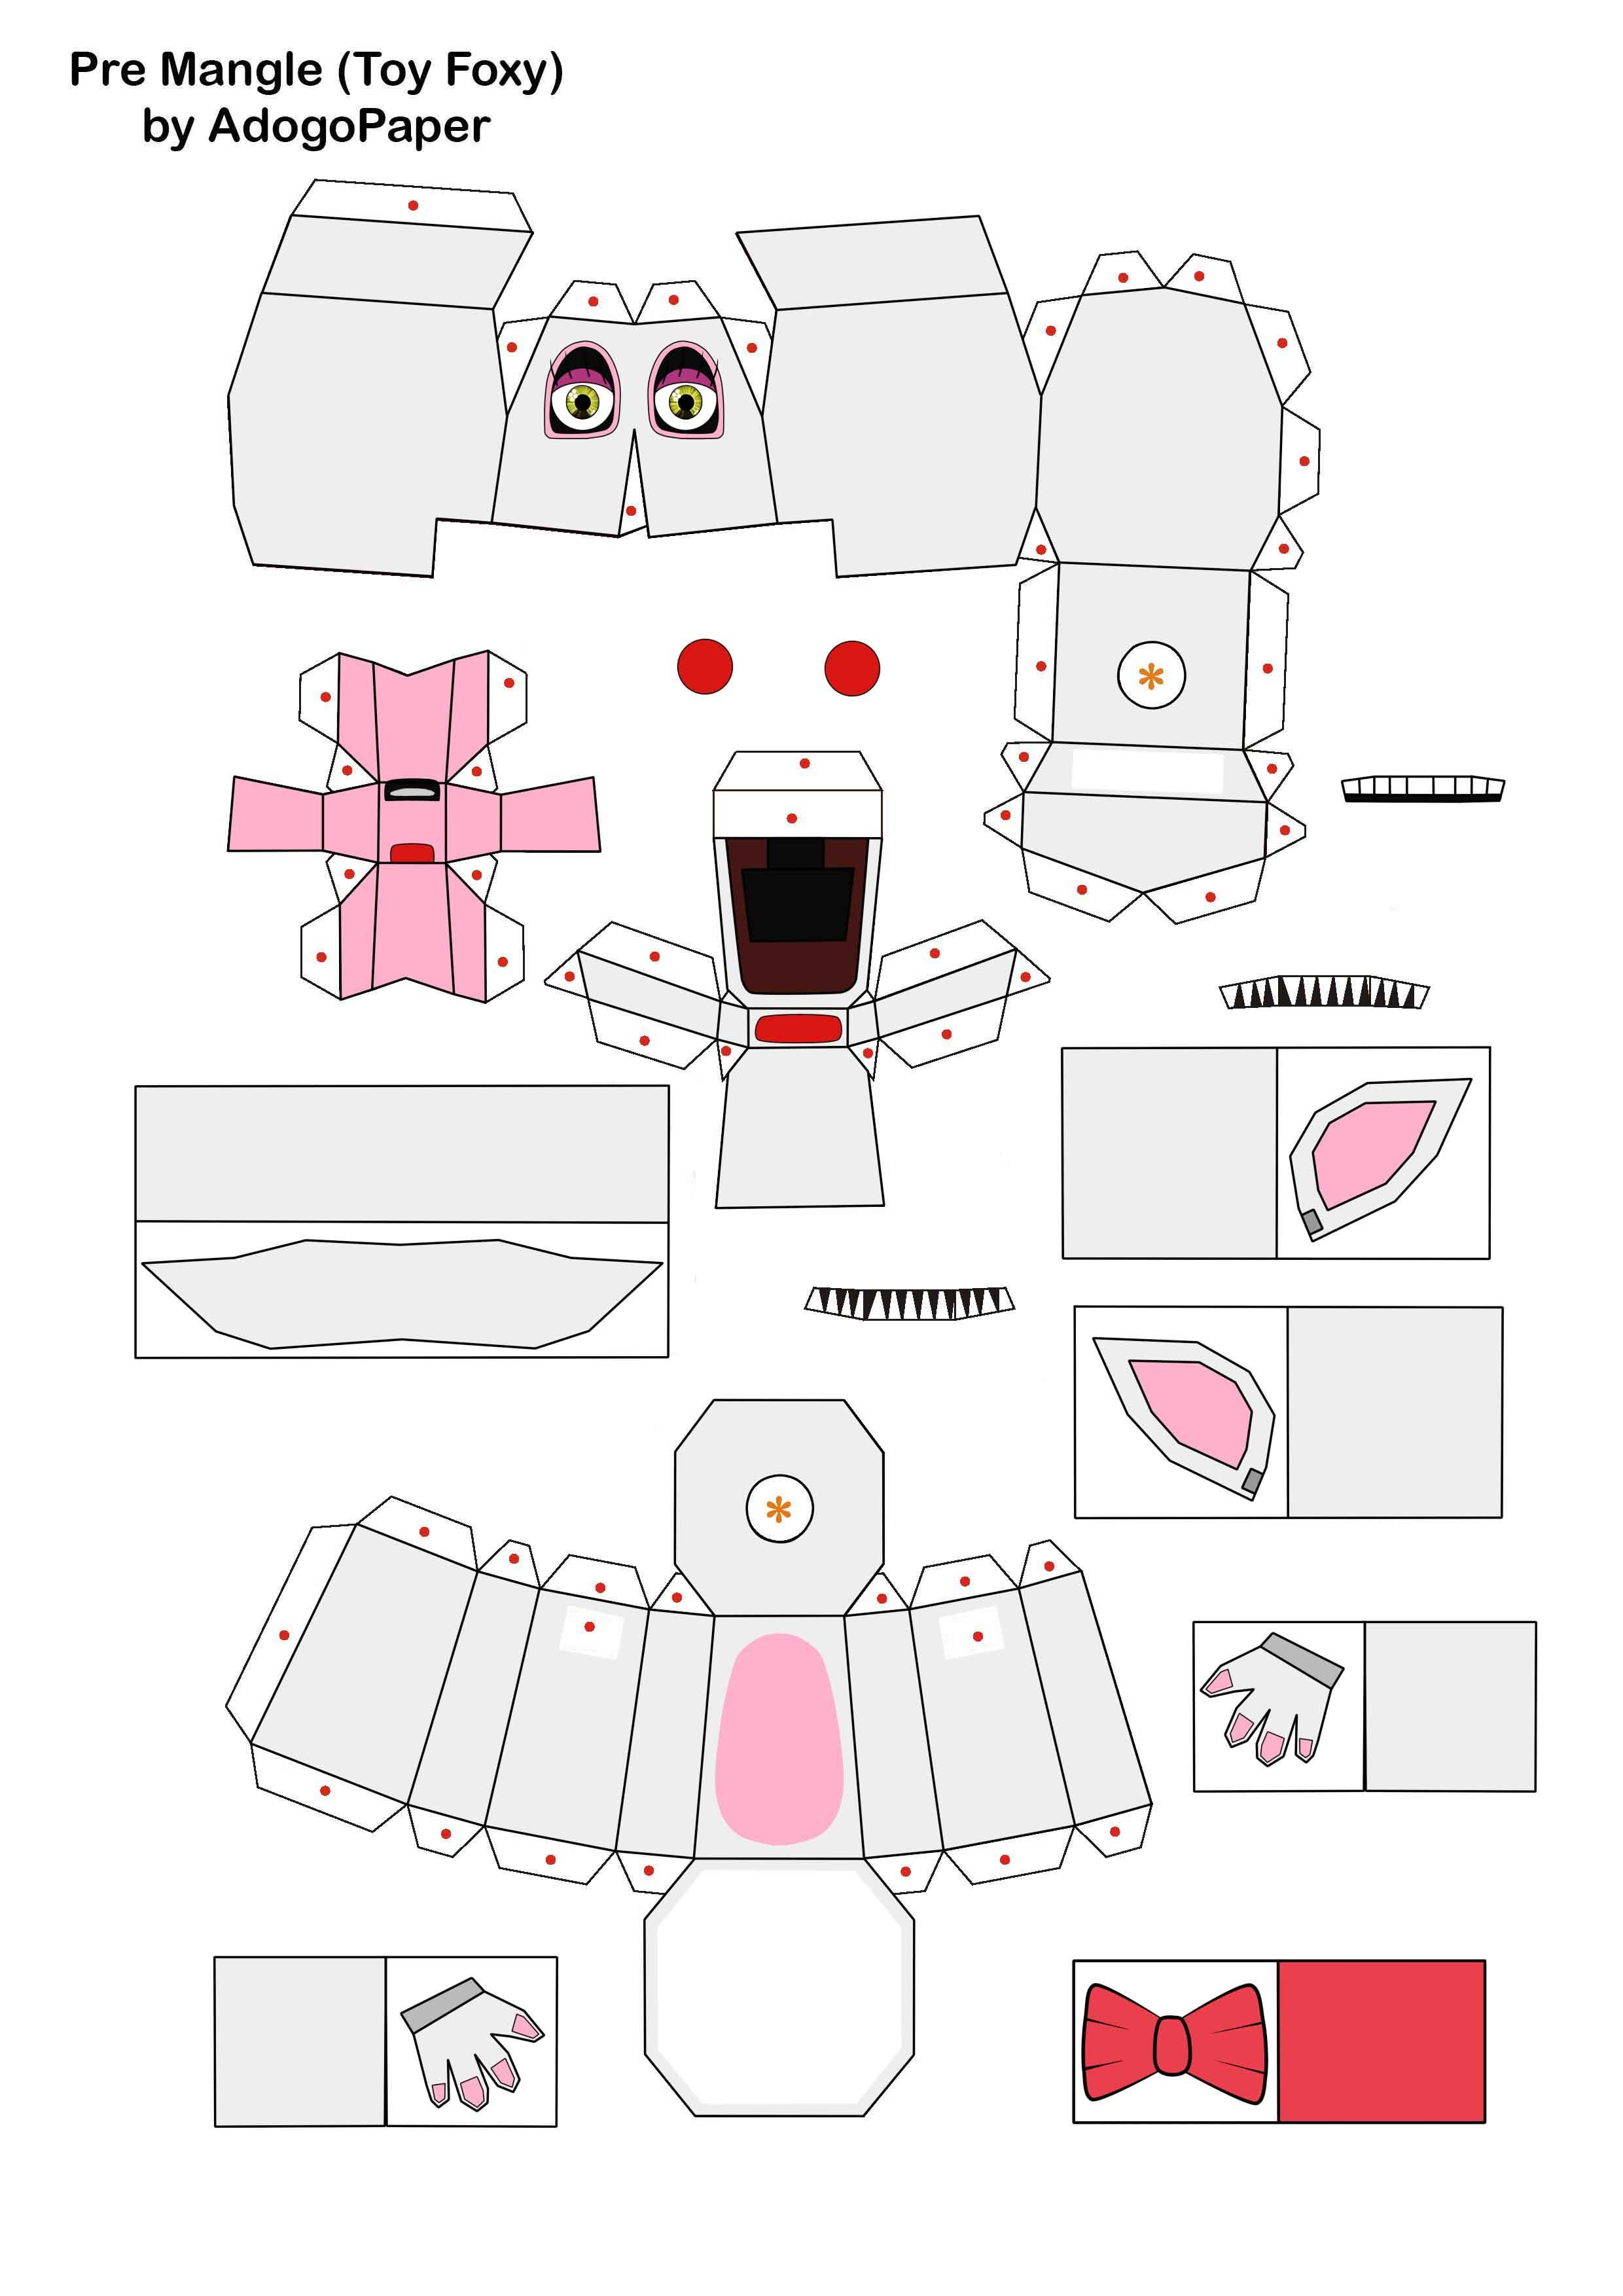 five nights at freddy\'s 2 pre-mangle papercraft P1 by Adogopaper ...